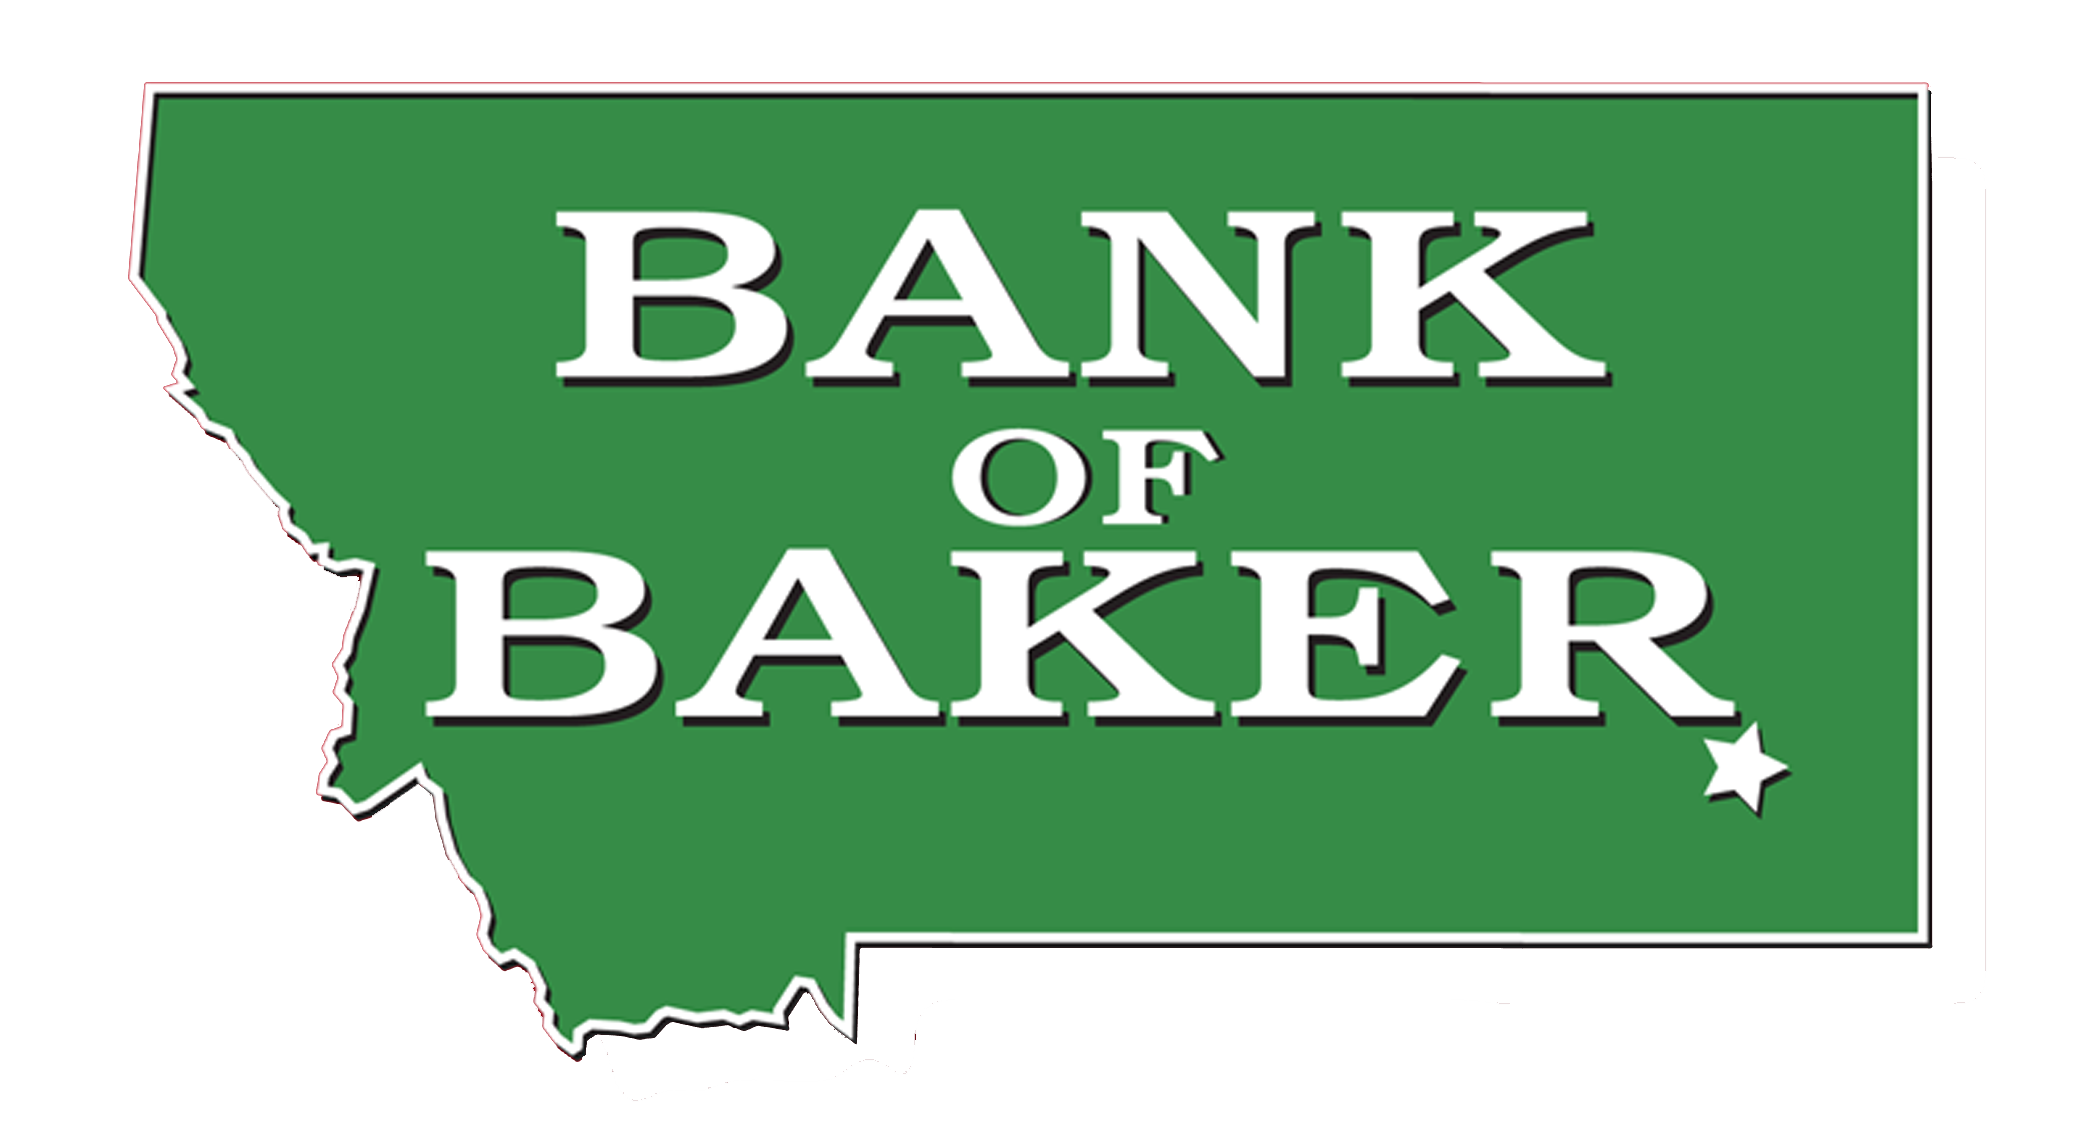 Bank-of-Baker-Logo